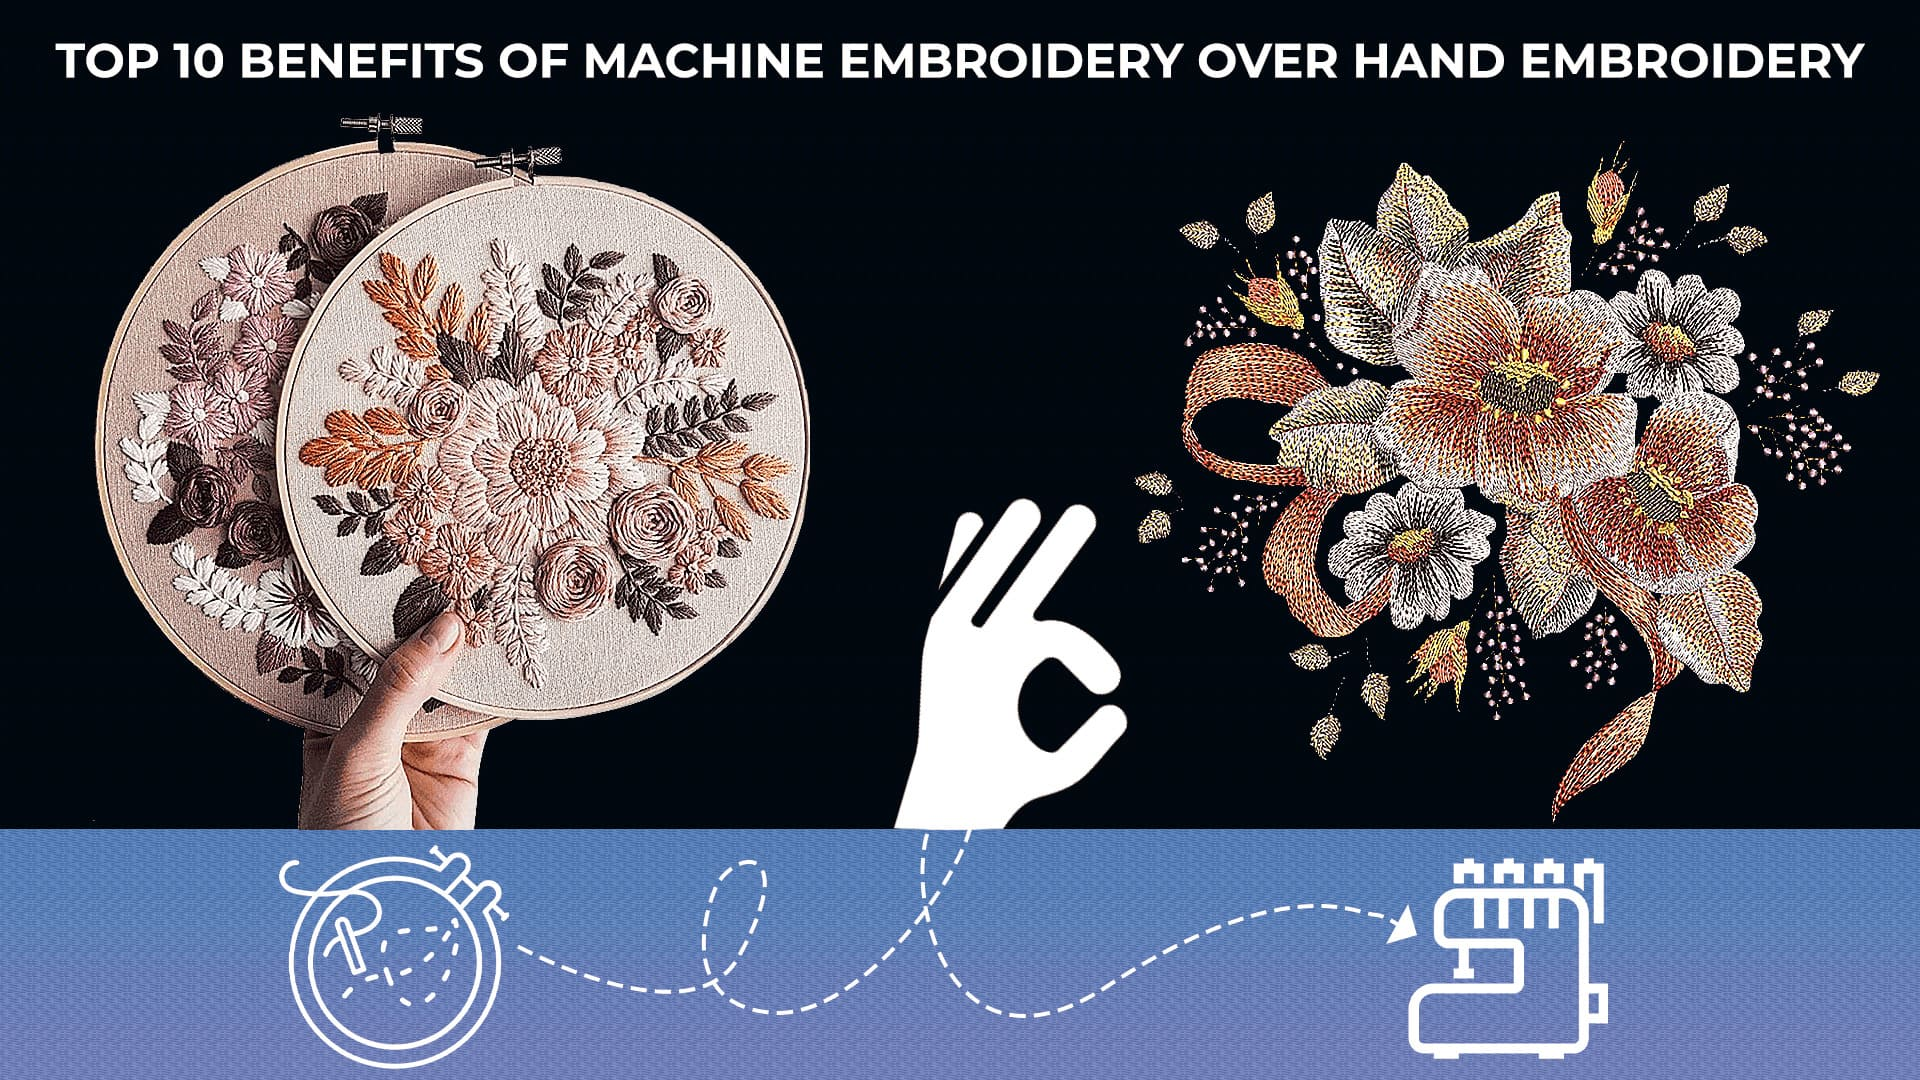 Benefits of machine embroidery